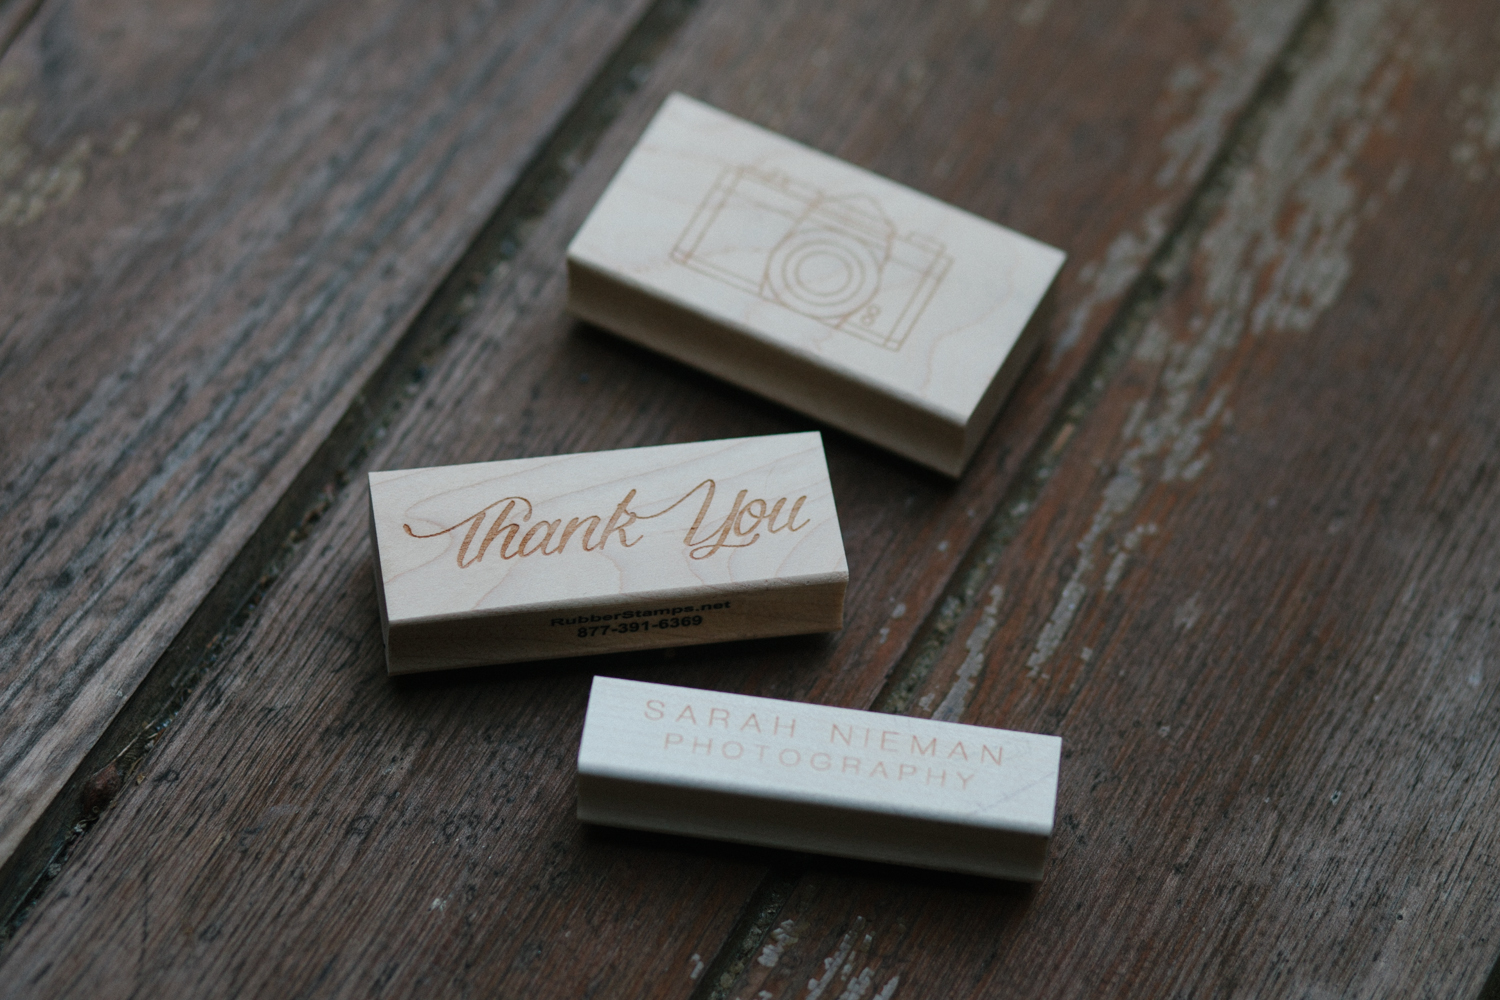 These stamps are so perfect. I separated the two pieces of my logo so that I can stamp them separately on things, which is super handy, especially when my logo is usually two different colors.